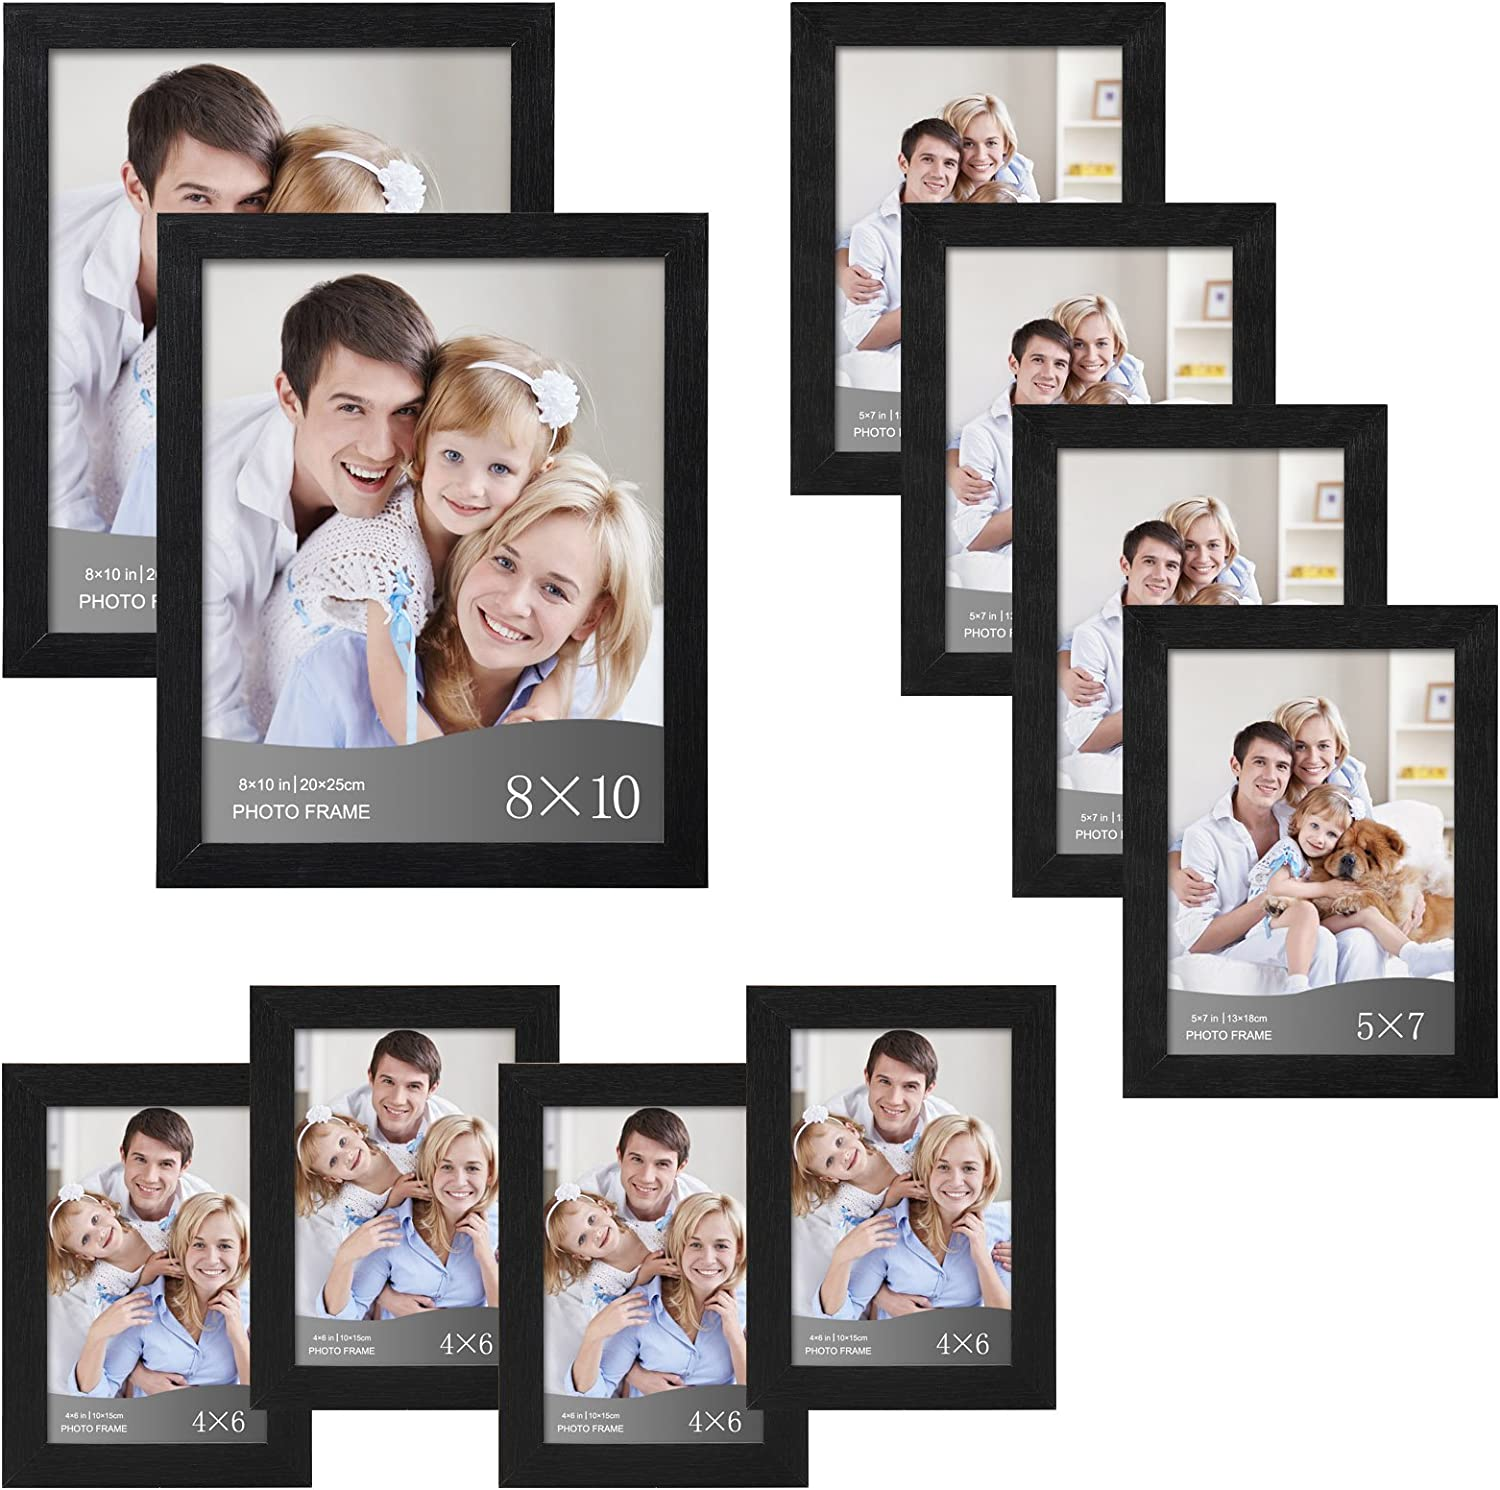 WOLTU 10 Piece Multi Pack Black Picture Frame Set for Wall with Plexiglass Cover,2-8x10,4-5x7,4-4x6,PF02C10-x